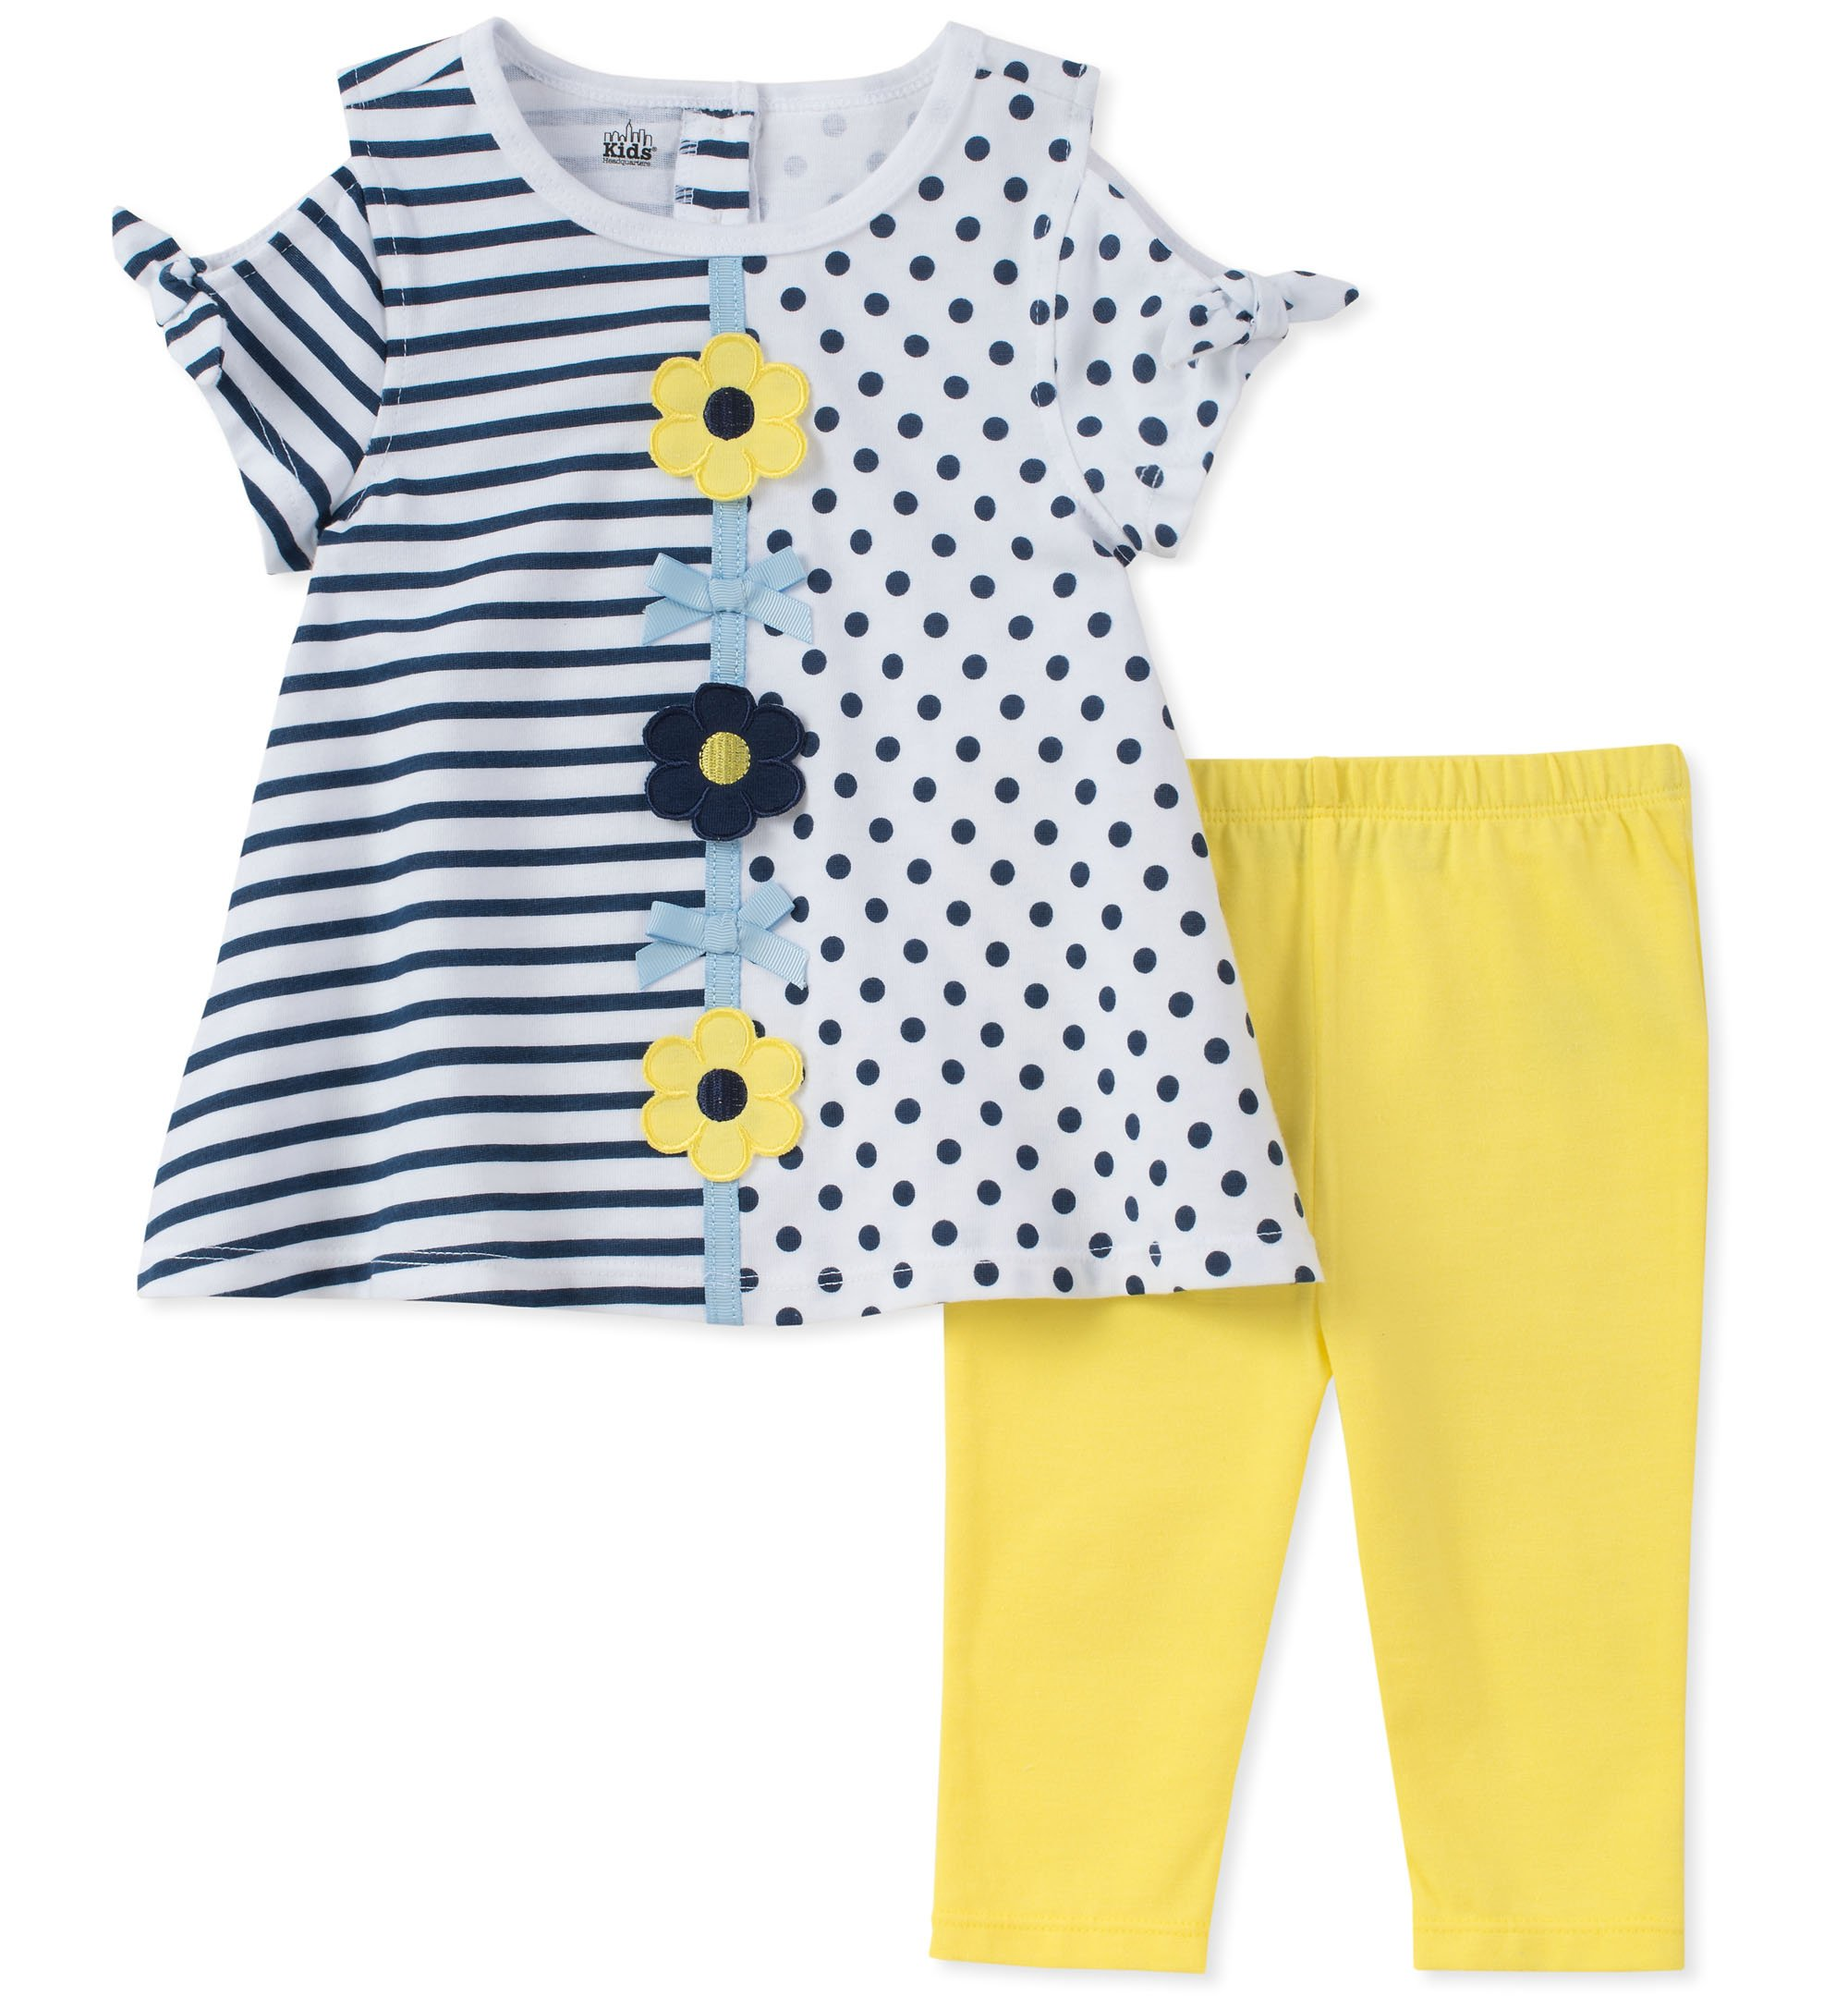 Kids Headquarters Toddler Girls' Tunic Set-Capsleeves, White/Blue/Yellow, 2T by Kids Headquarters (Image #1)